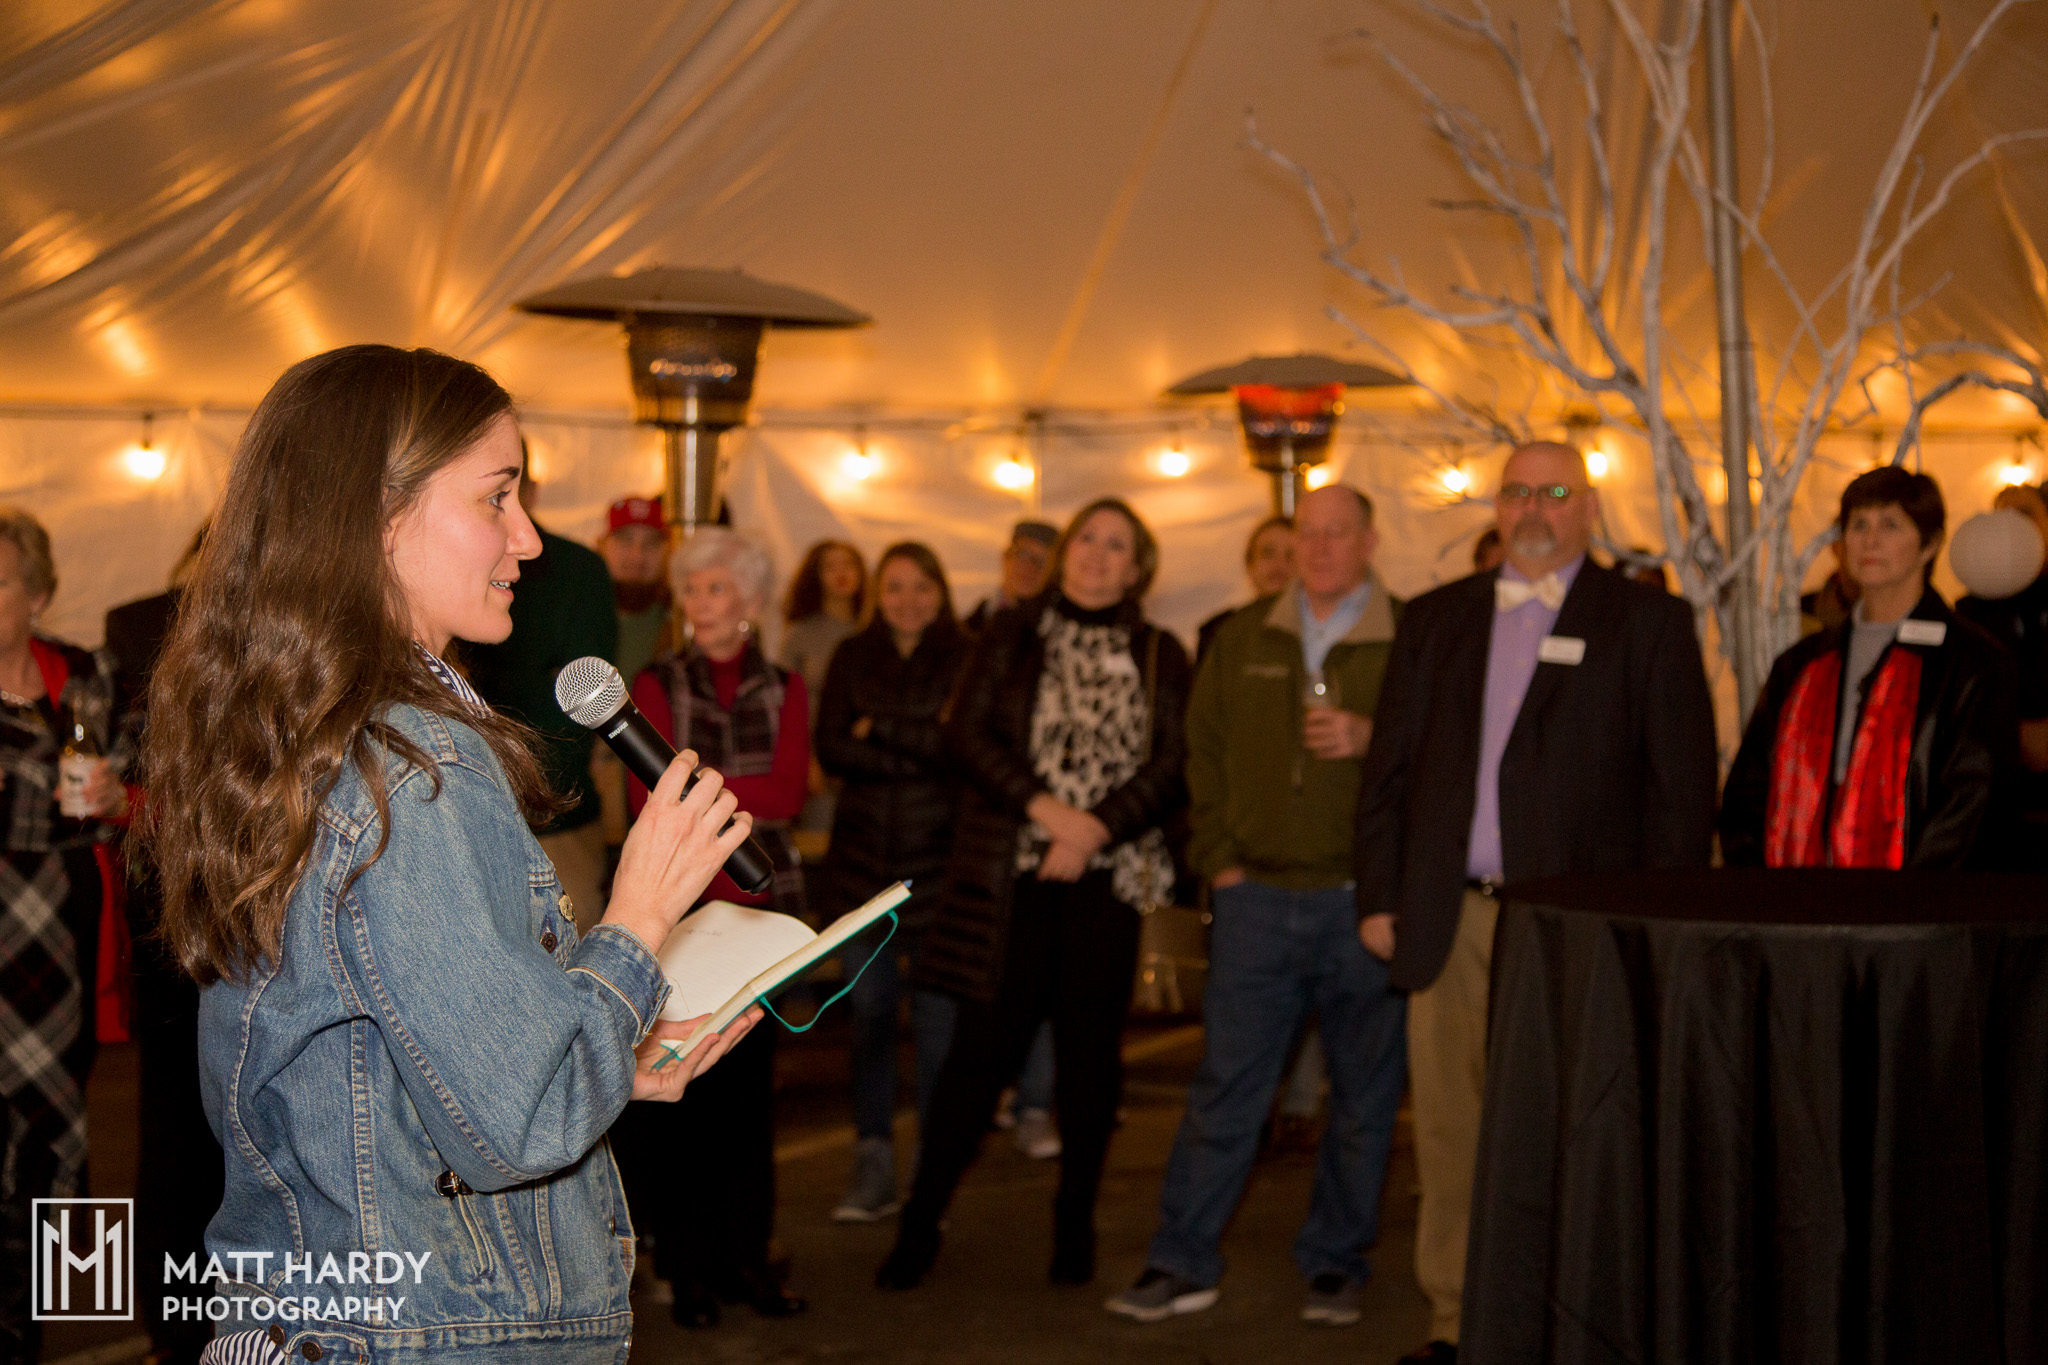 Madeline Bates, our Get Artistic lead, thanks the local community for their support of Get Artistic this year. Photo by Matt Hardy Photography.